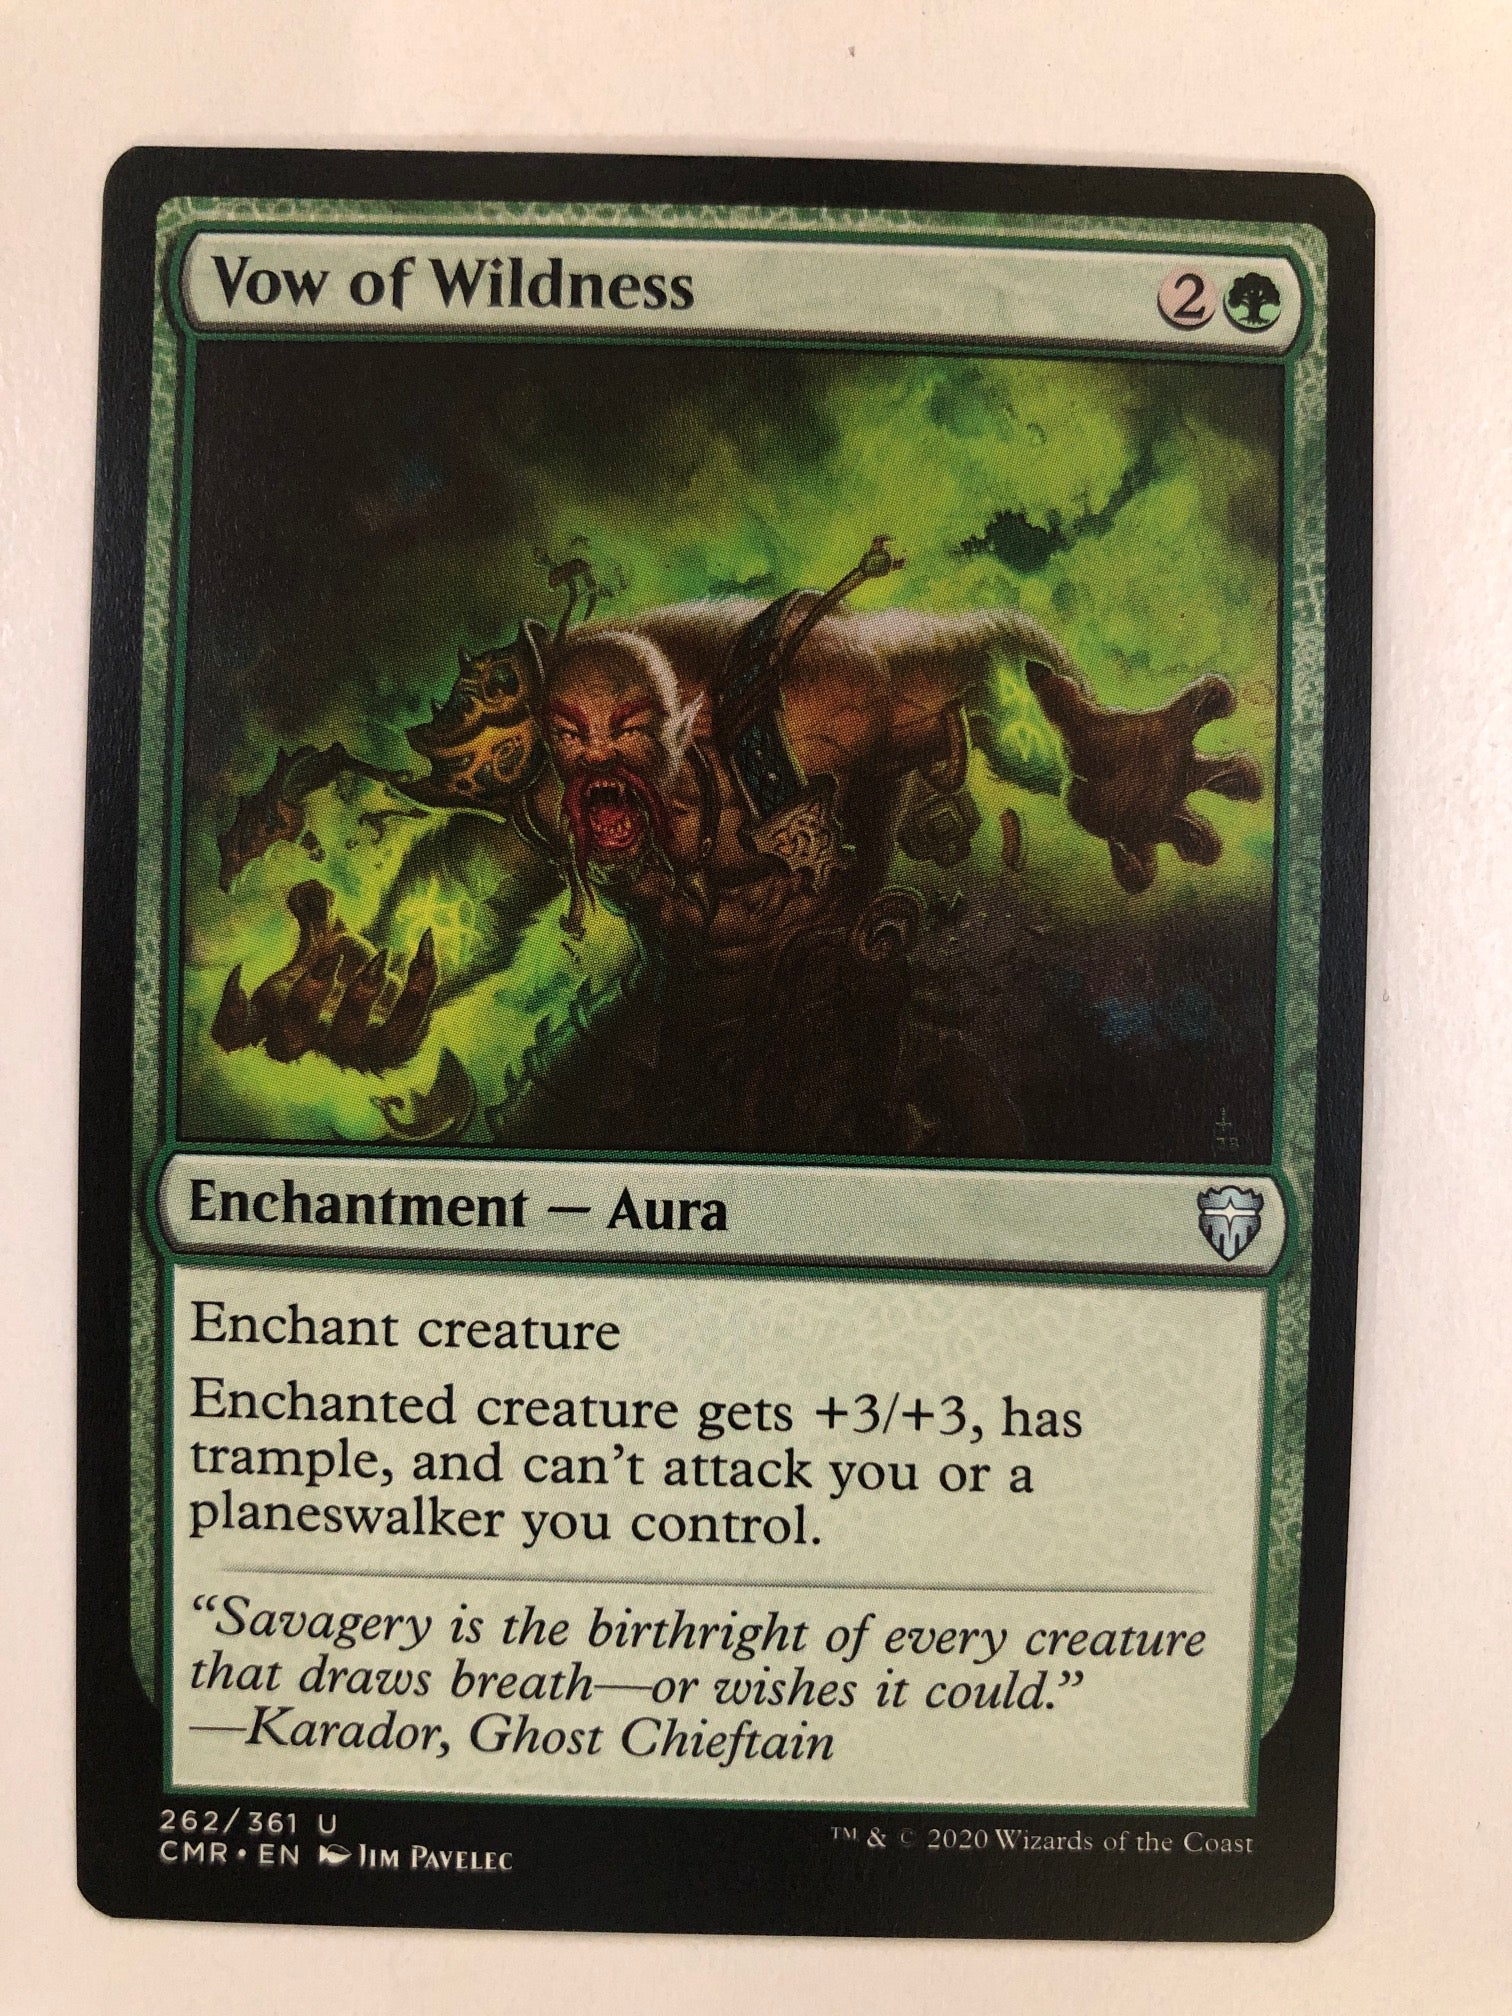 Vow of Wildness - CMR 262/361 U (M/NM)